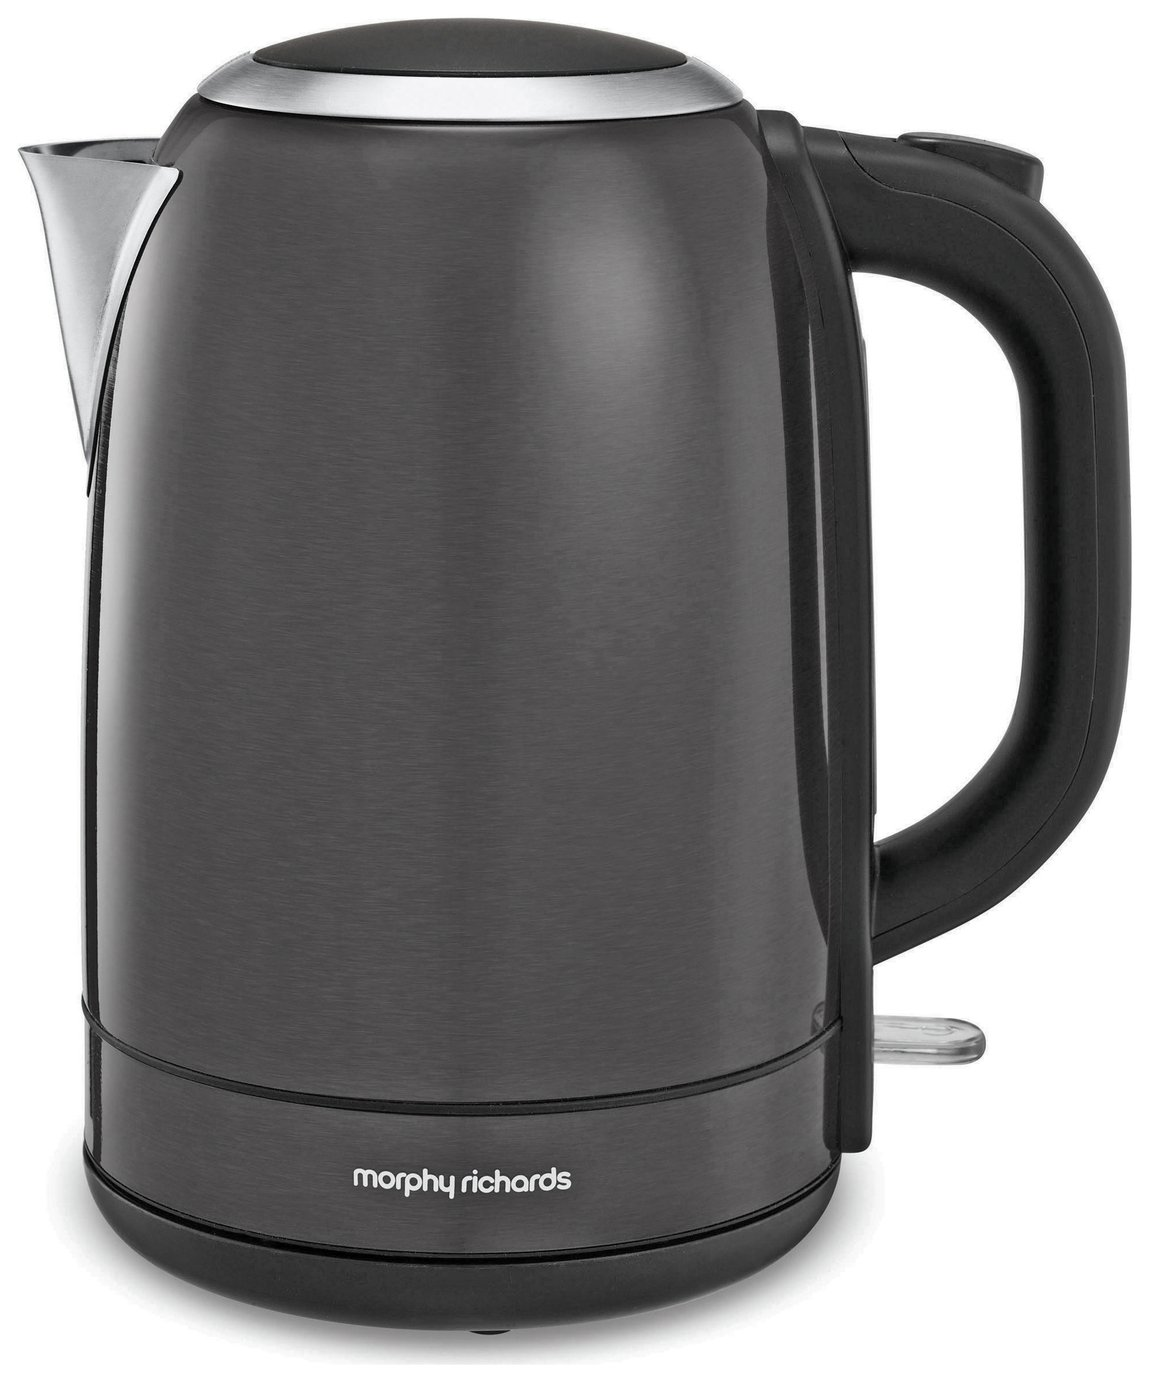 Morphy Richards 102780 Equip Kettle - Black